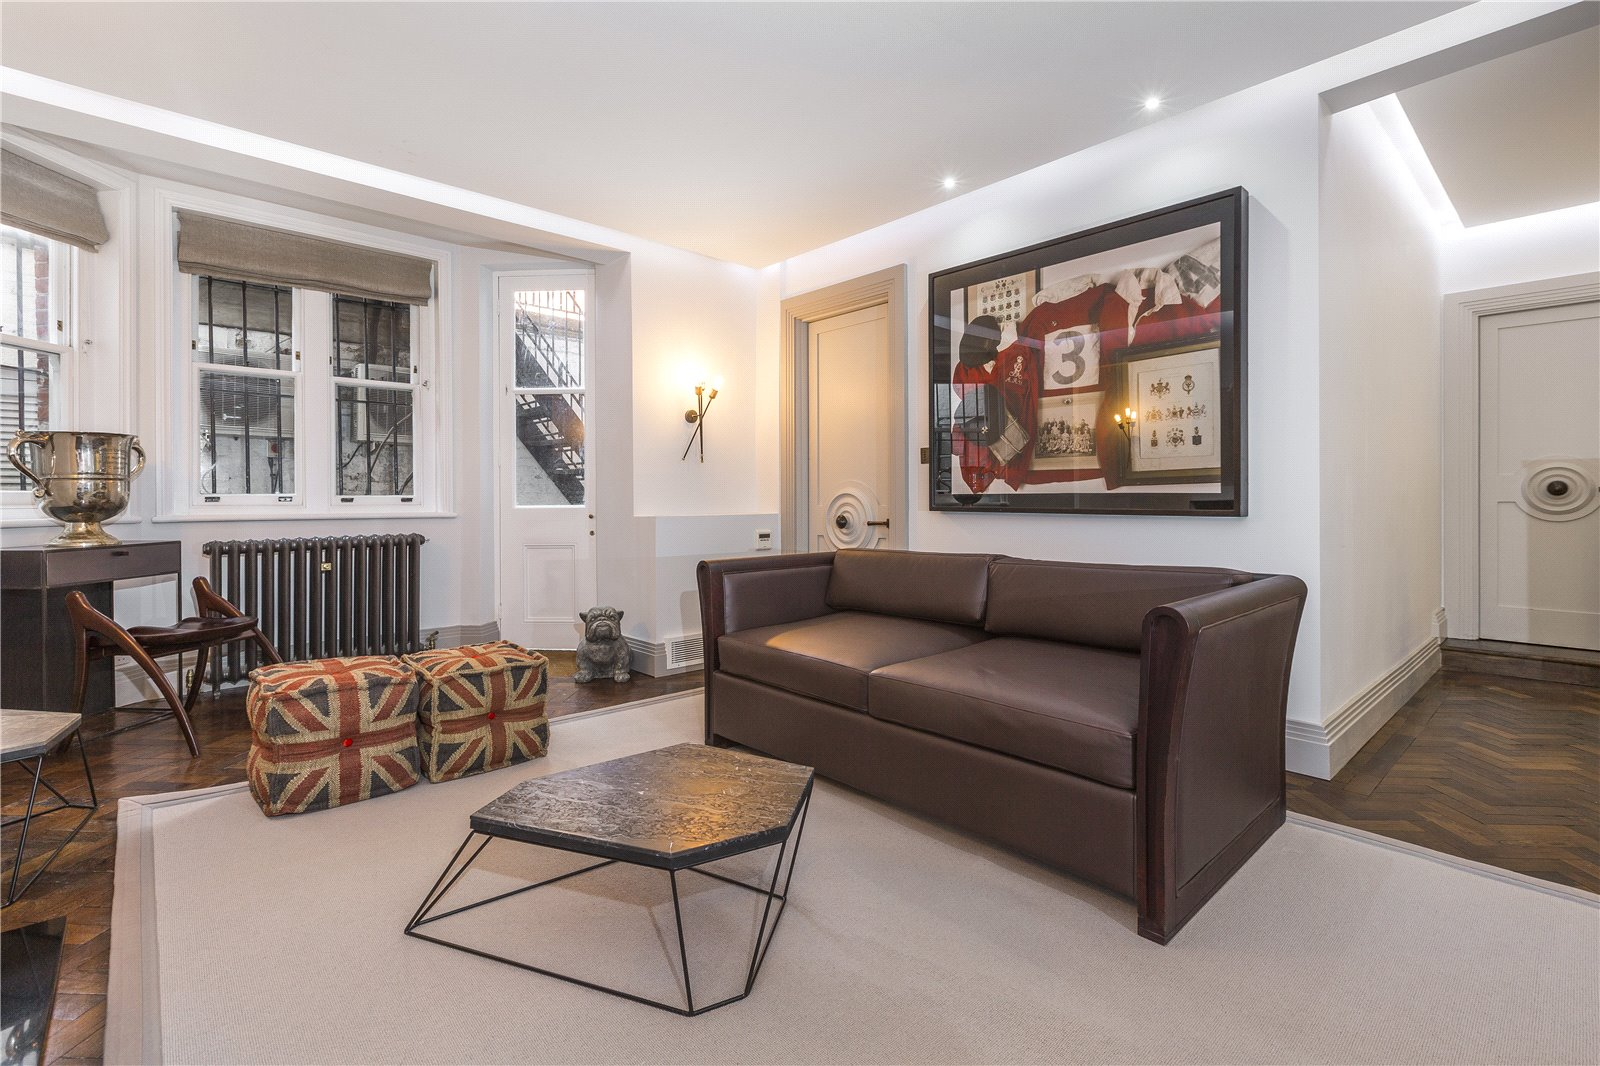 Apartments / Flats for Rent at North Audley Street, Mayfair, London, W1K North Audley Street, Mayfair, London, W1K